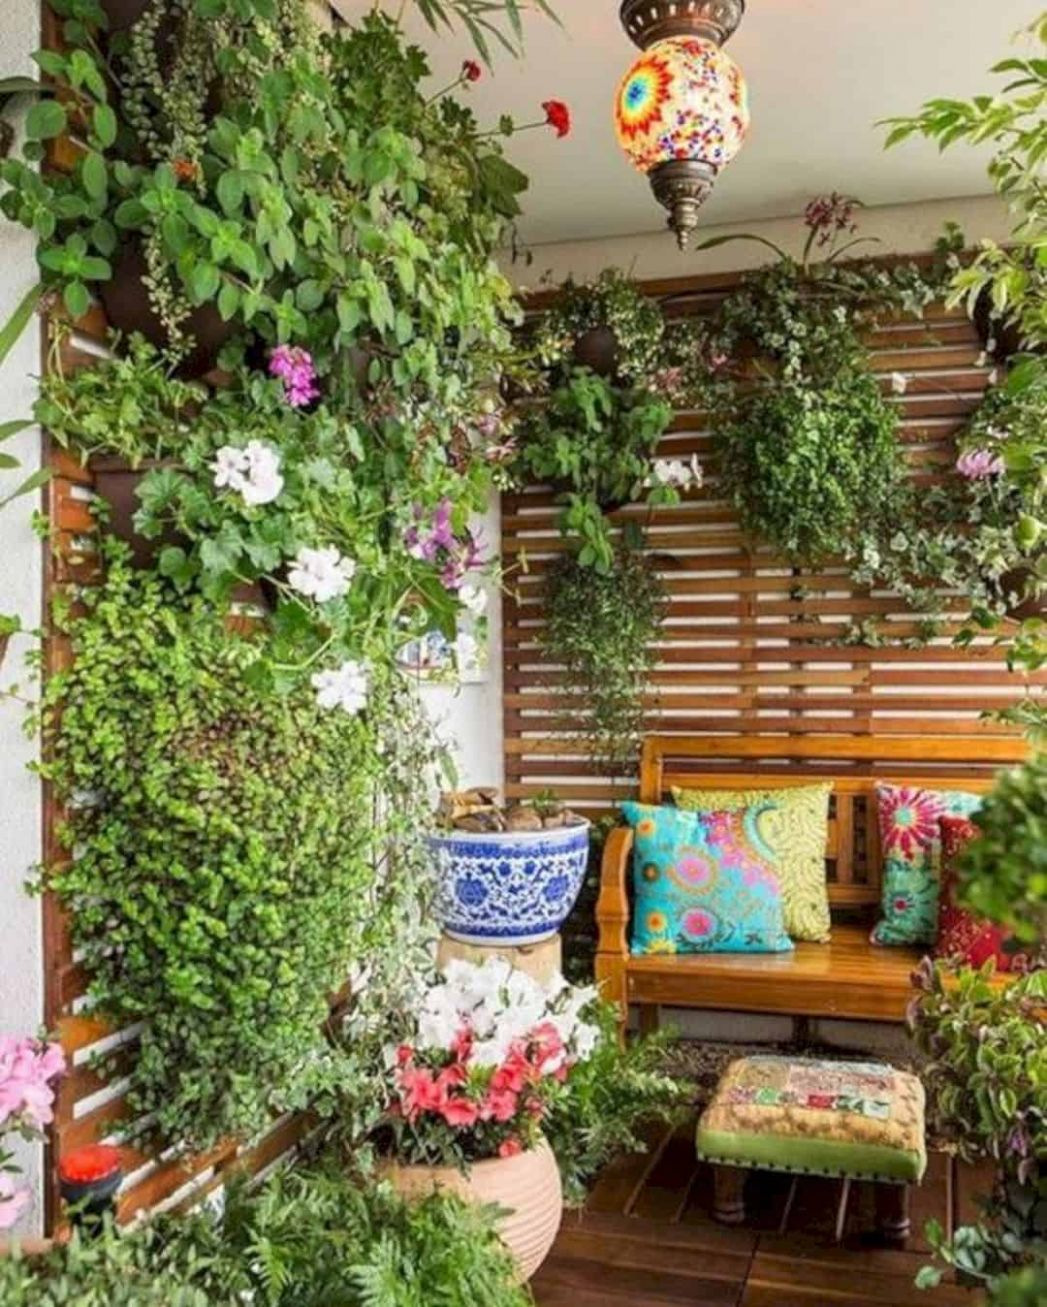 12 Comfy Furniture Ideas to Beautify Your Balcony - balcony beautification ideas